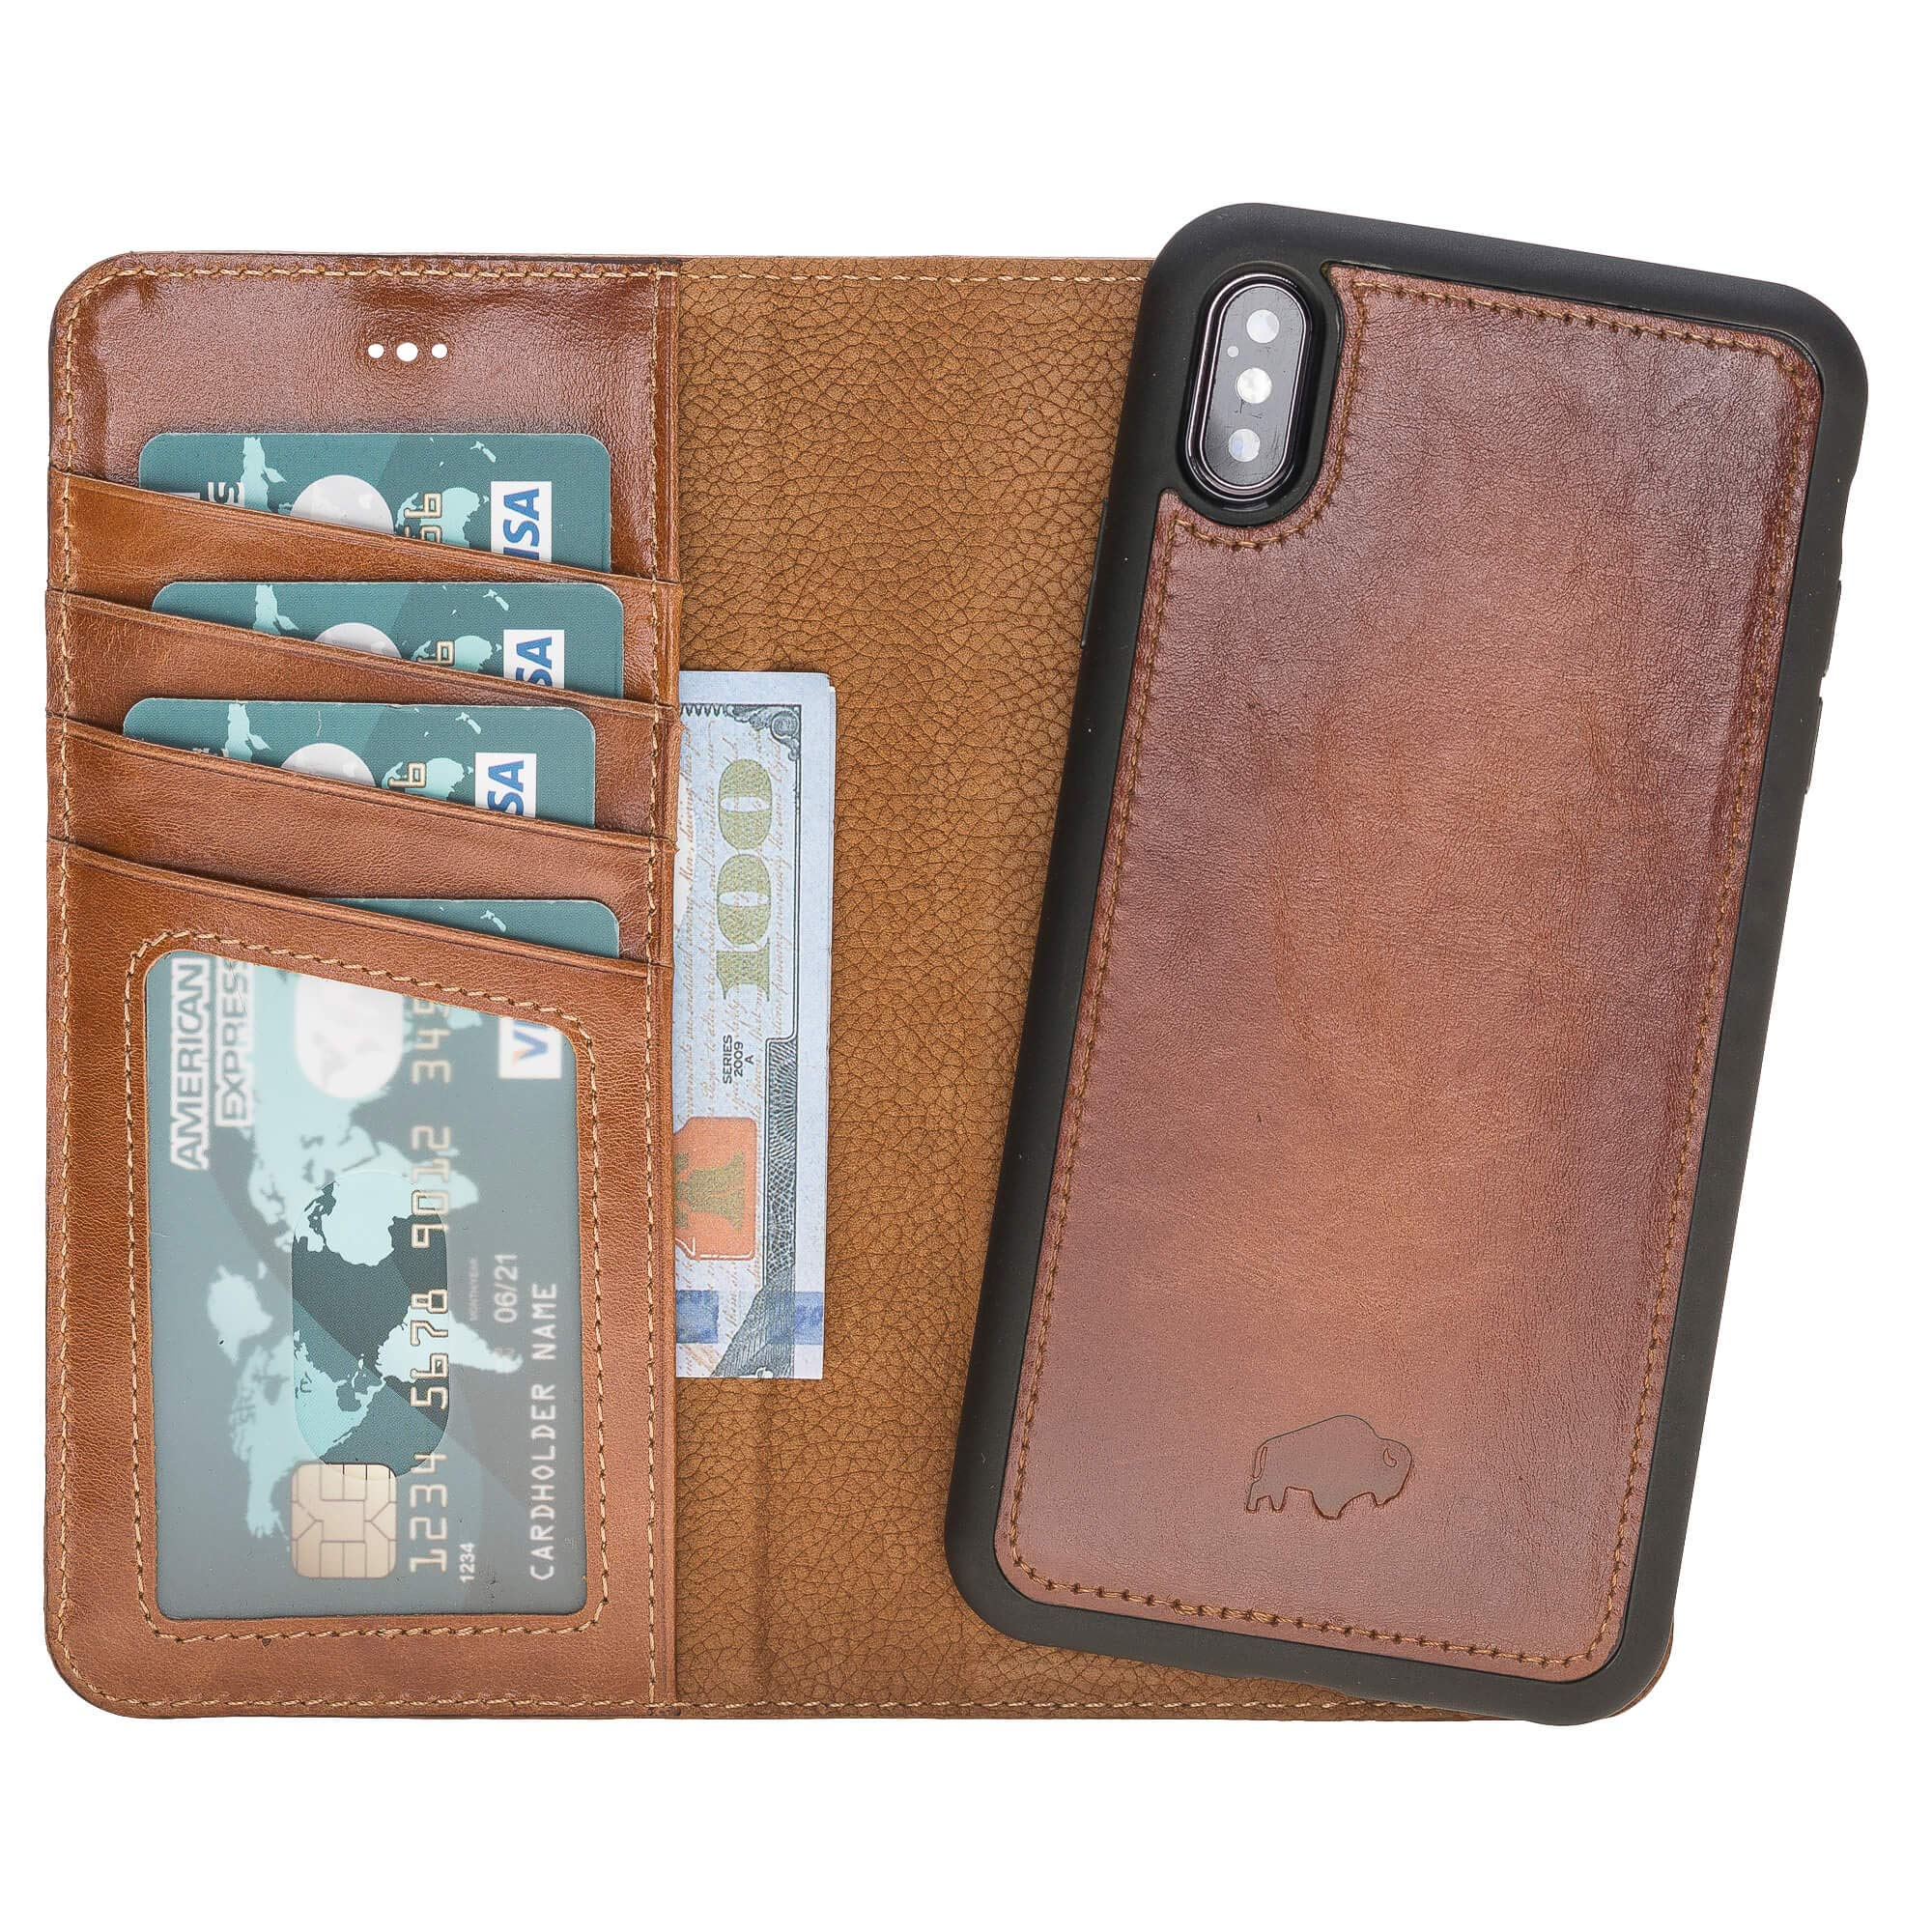 Burkley Case Detachable Leather Wallet Case for Apple iPhone Xs MAX with Magnetic Closure and Premium Snap-on | Book Style Cover with Card Holders and Kickstand (Burnished Tan) by Burkley Case